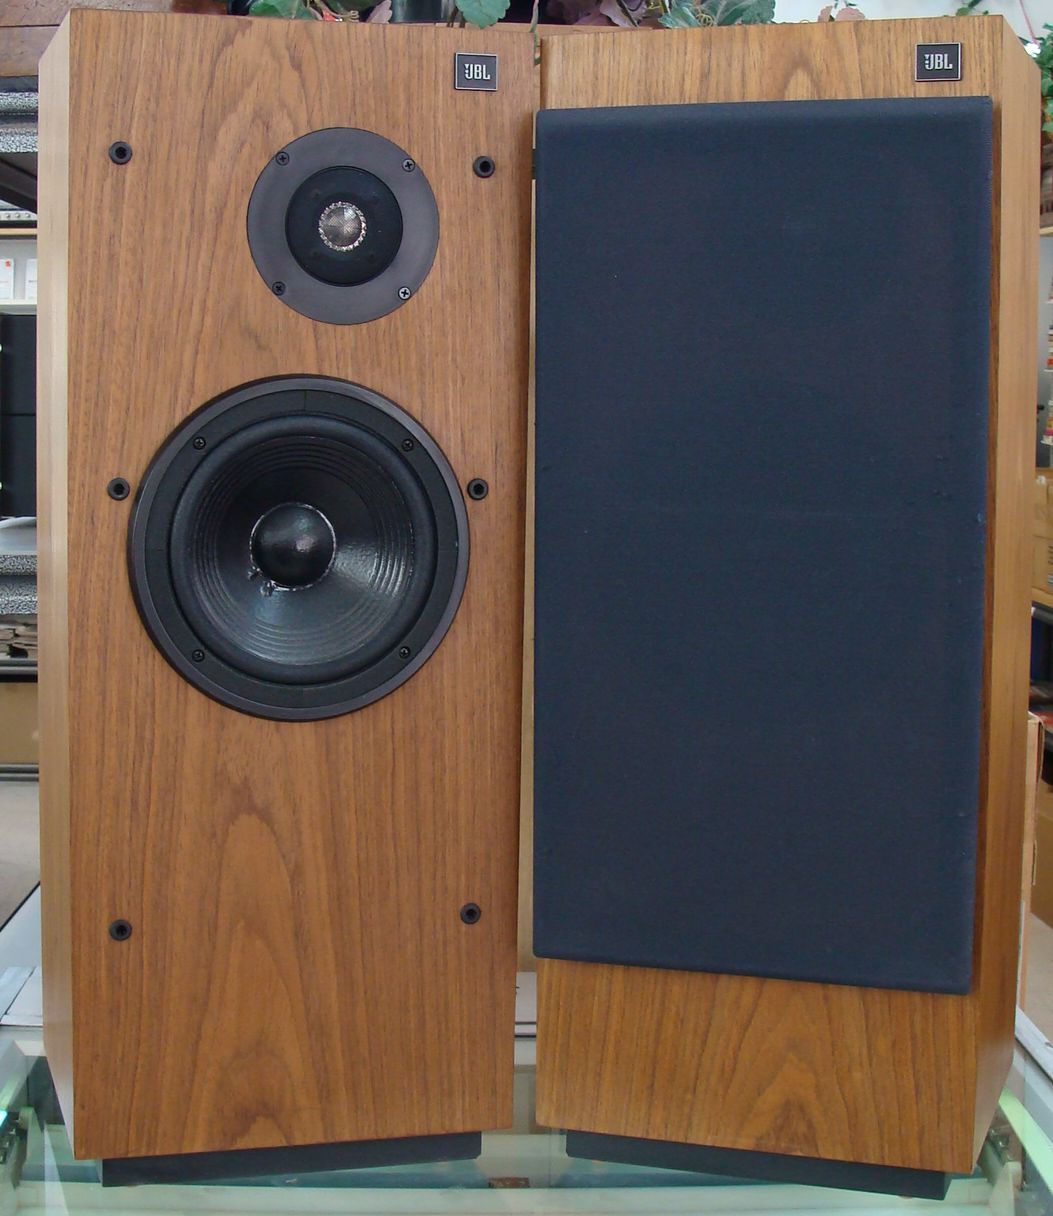 JBL L60T Studio Monitors for the Living Room - The Addition